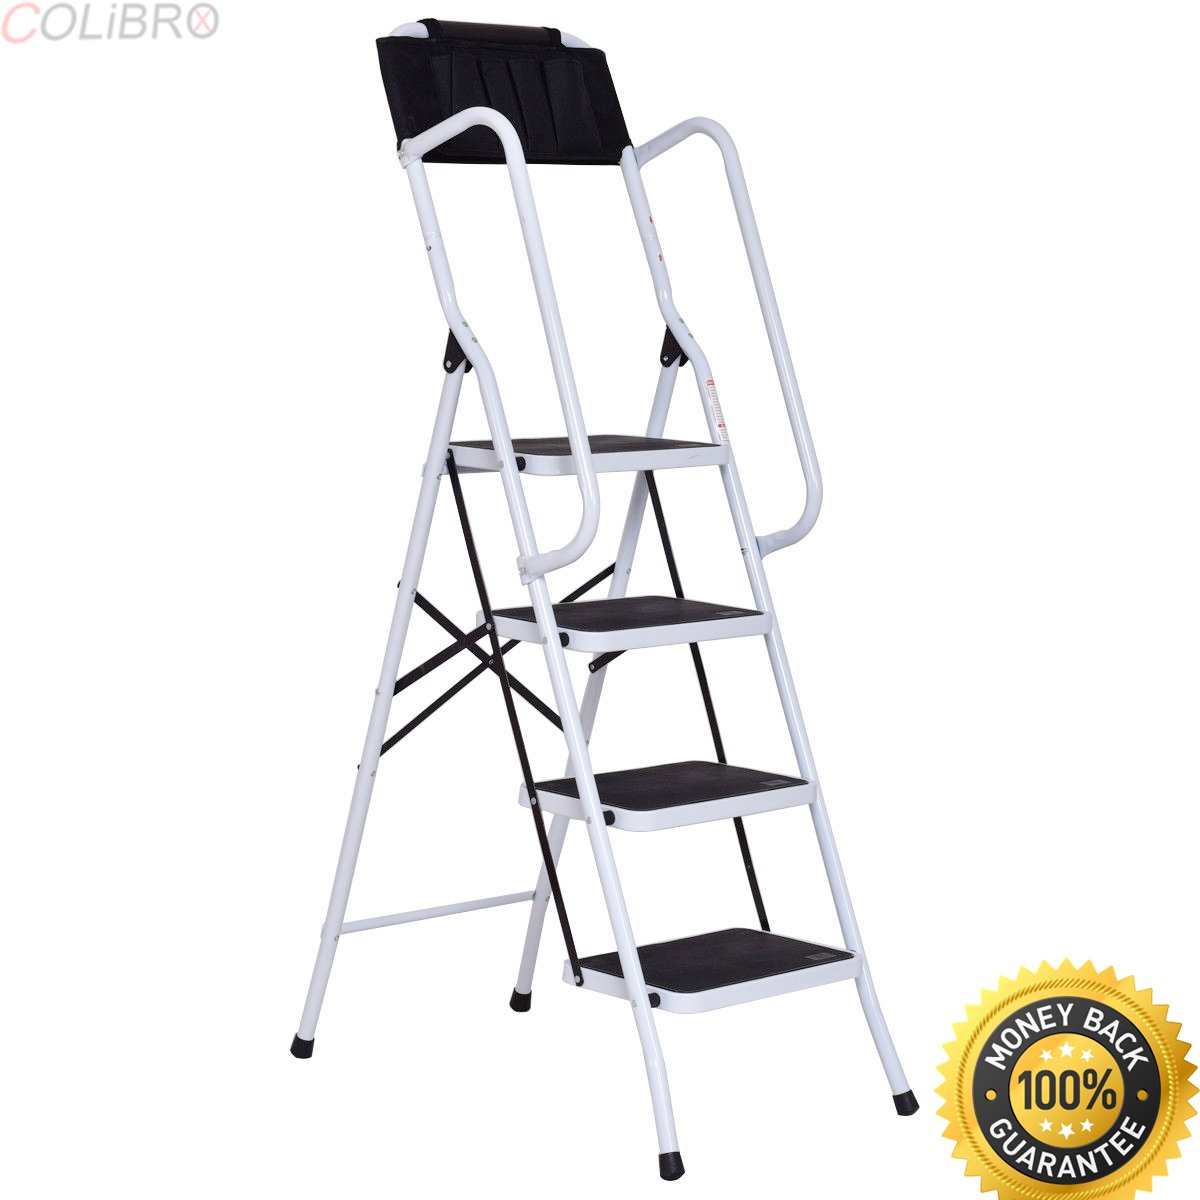 COLIBROX--2 In 1 Non-slip 4 Step Ladder Folding Stool w/ Handrails and Tool Pouch Caddy. 4-platform step ladder with safety support rails. easylife steel safety four step ladder with support rails.